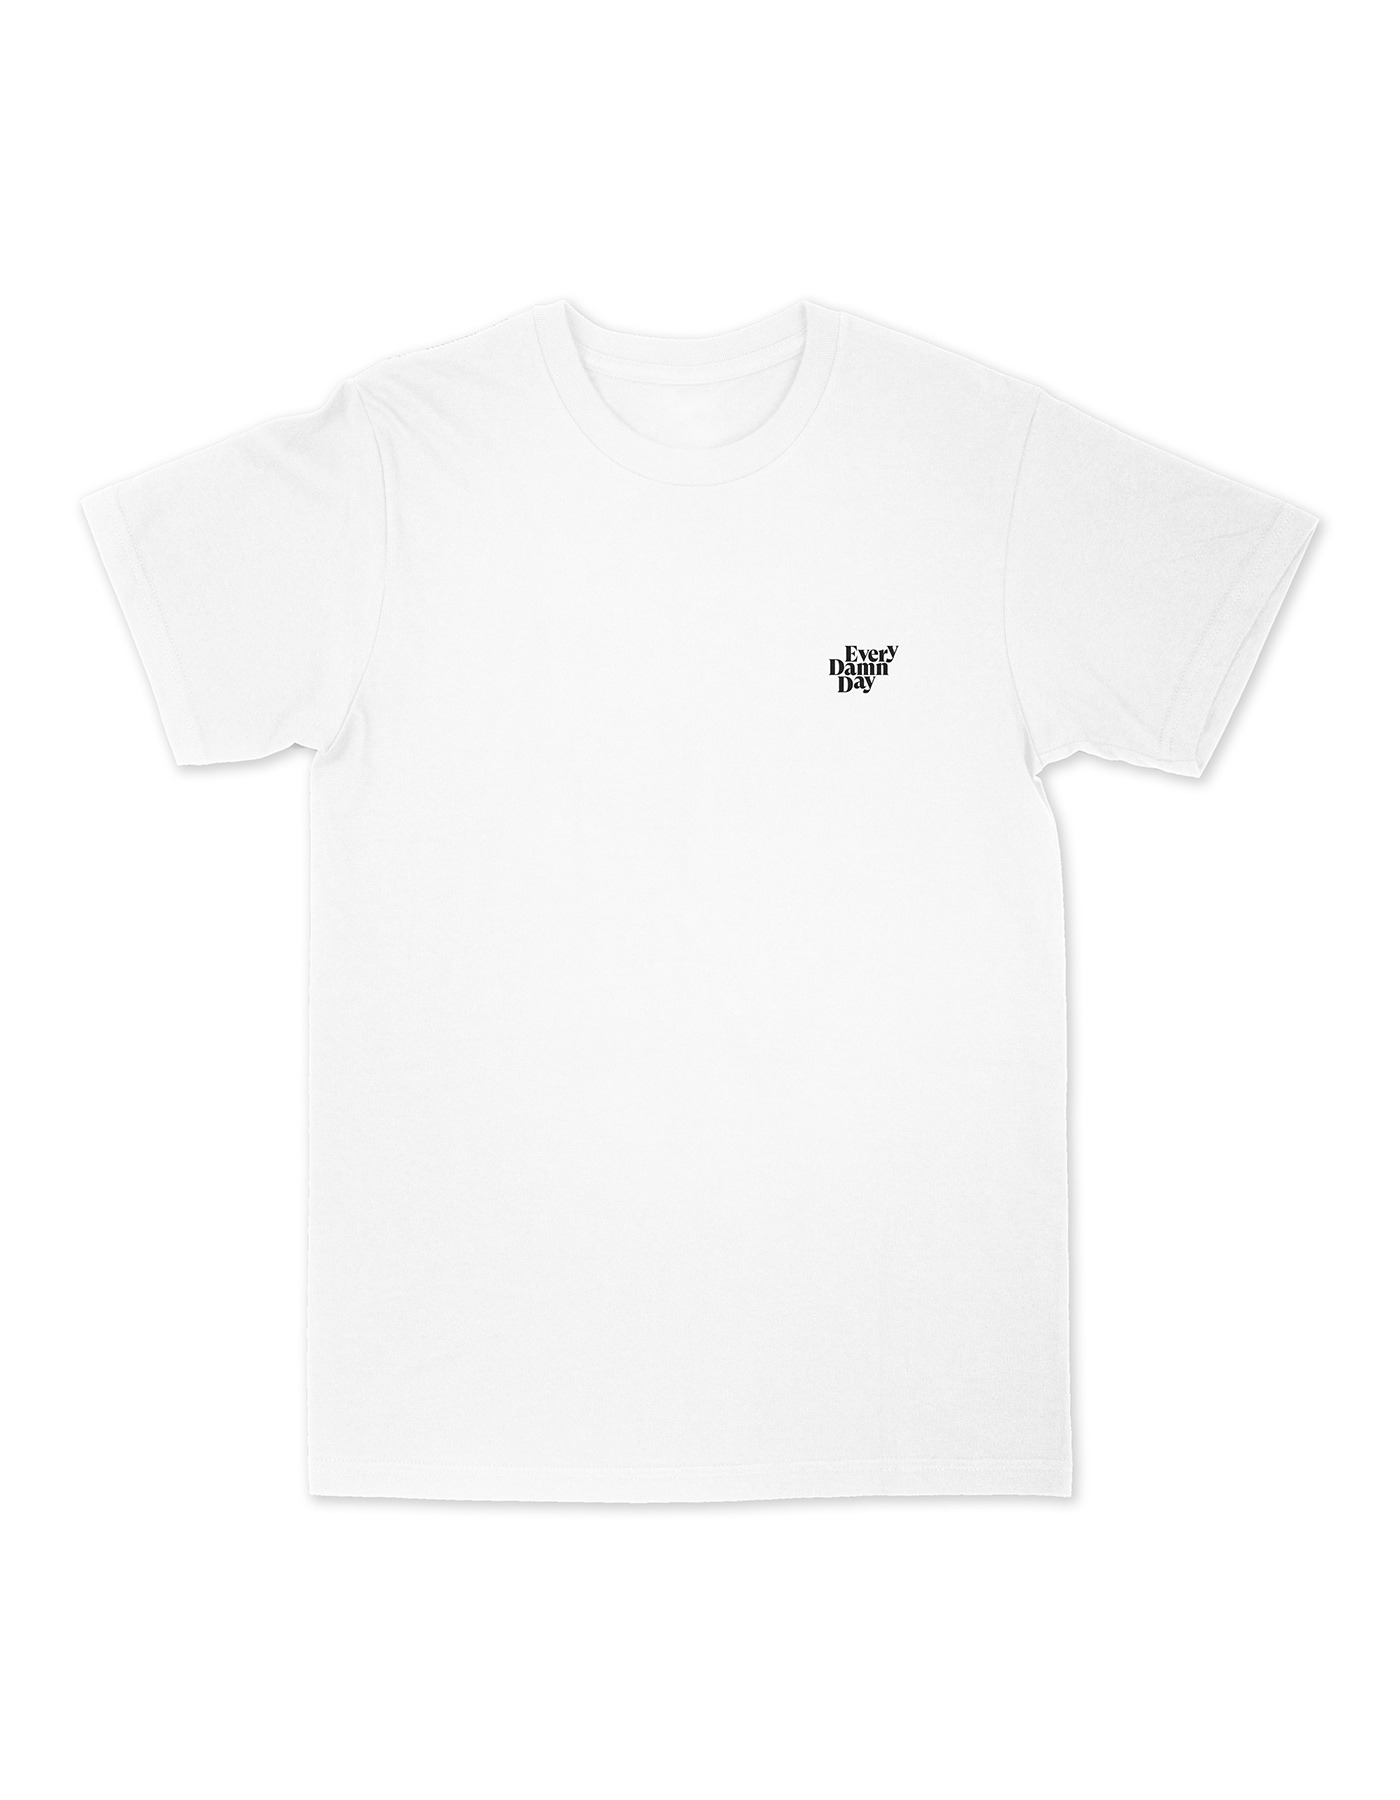 The sound of experience T-shirts - White/Black